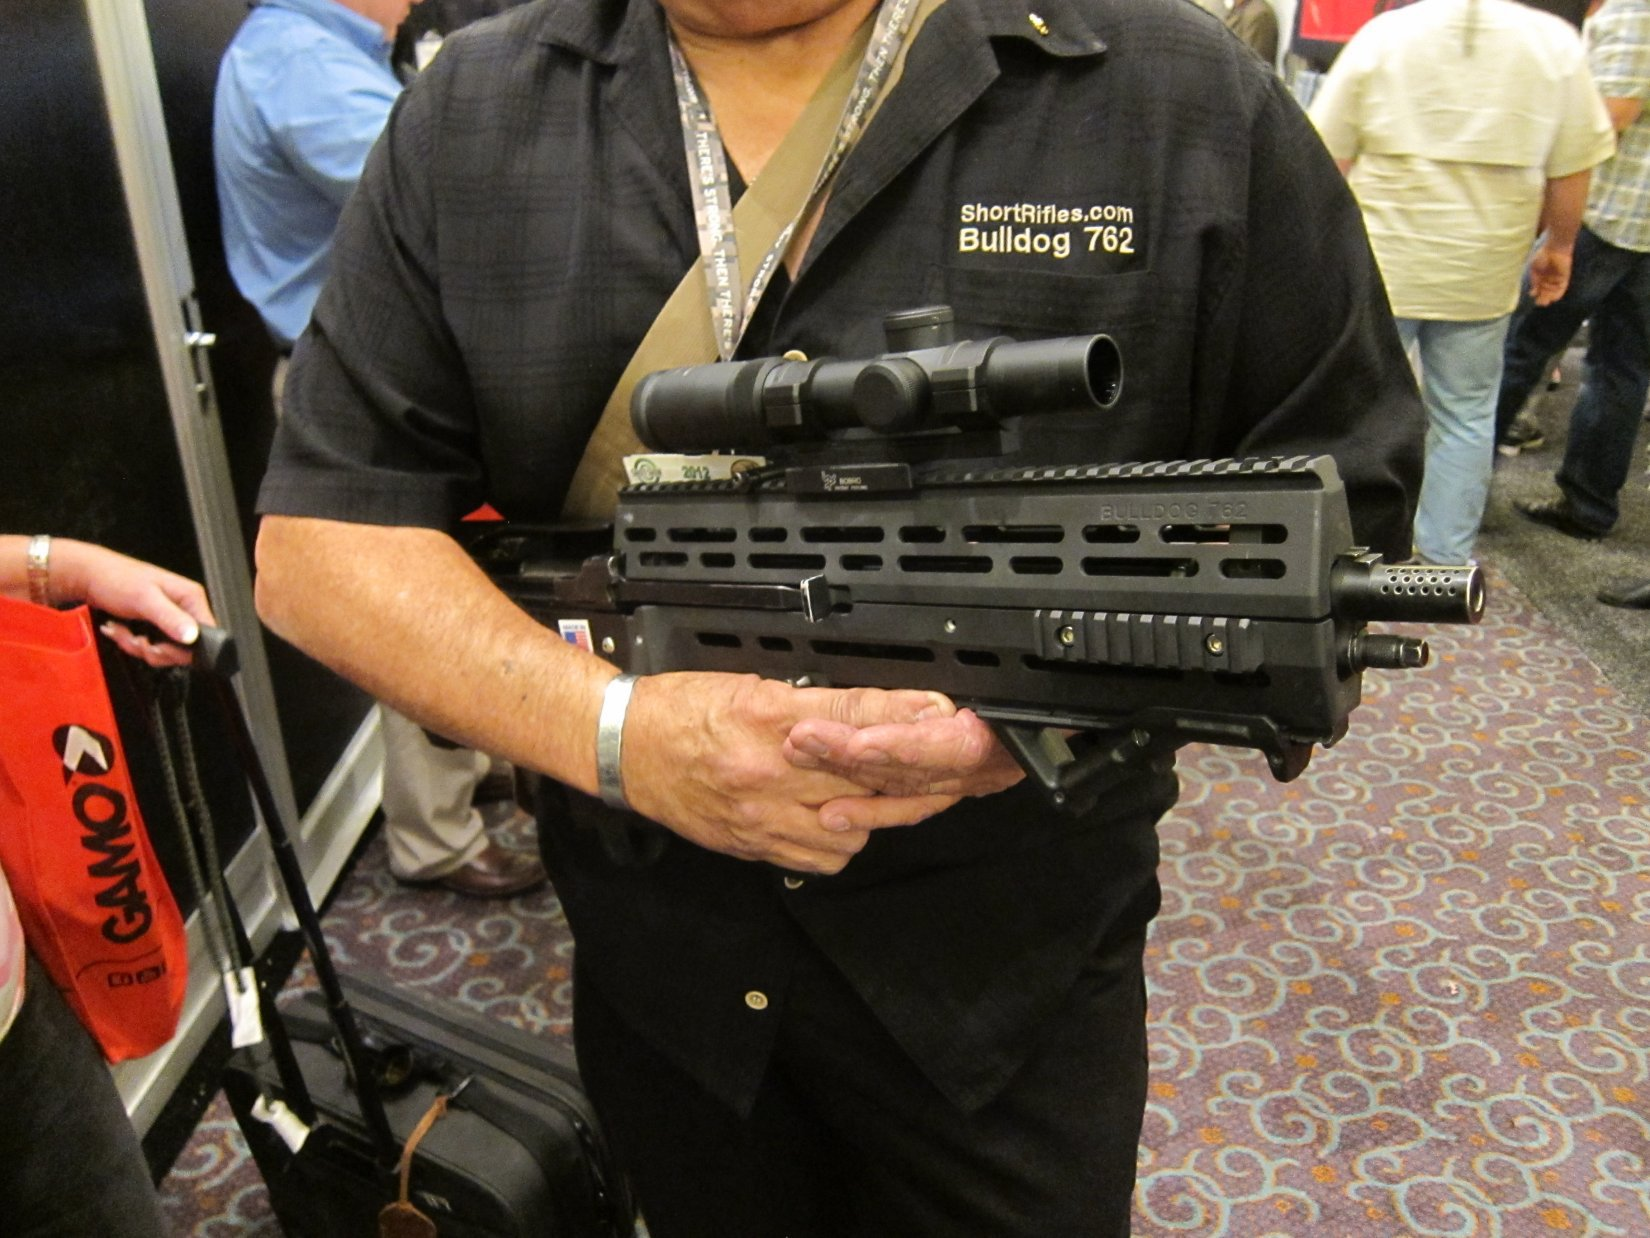 Short Rifle Stock System SRSS BullDog762 Gen 4 Bullpup M14 M1A Battle Rifle Carbine with GRSC CRS 16 M4 62 Tactical Scope SHOT Show 2012 DefenseReview.com DR 1 Short Rifle Stock System SRSS BullDog 762 Gen 4 (also written SRSS BullDog762 Gen 4) 16 Bullpup M14/M1A Battle Rifle/Carbine (7.62mm NATO/.308 Win.) with GRSC CRS 16 M4 62 Tactical Scope for 21st Century Military Special Operations Forces (SOF) Assaulters/Operators and Civilian Tactical Shooters! (Photos!)